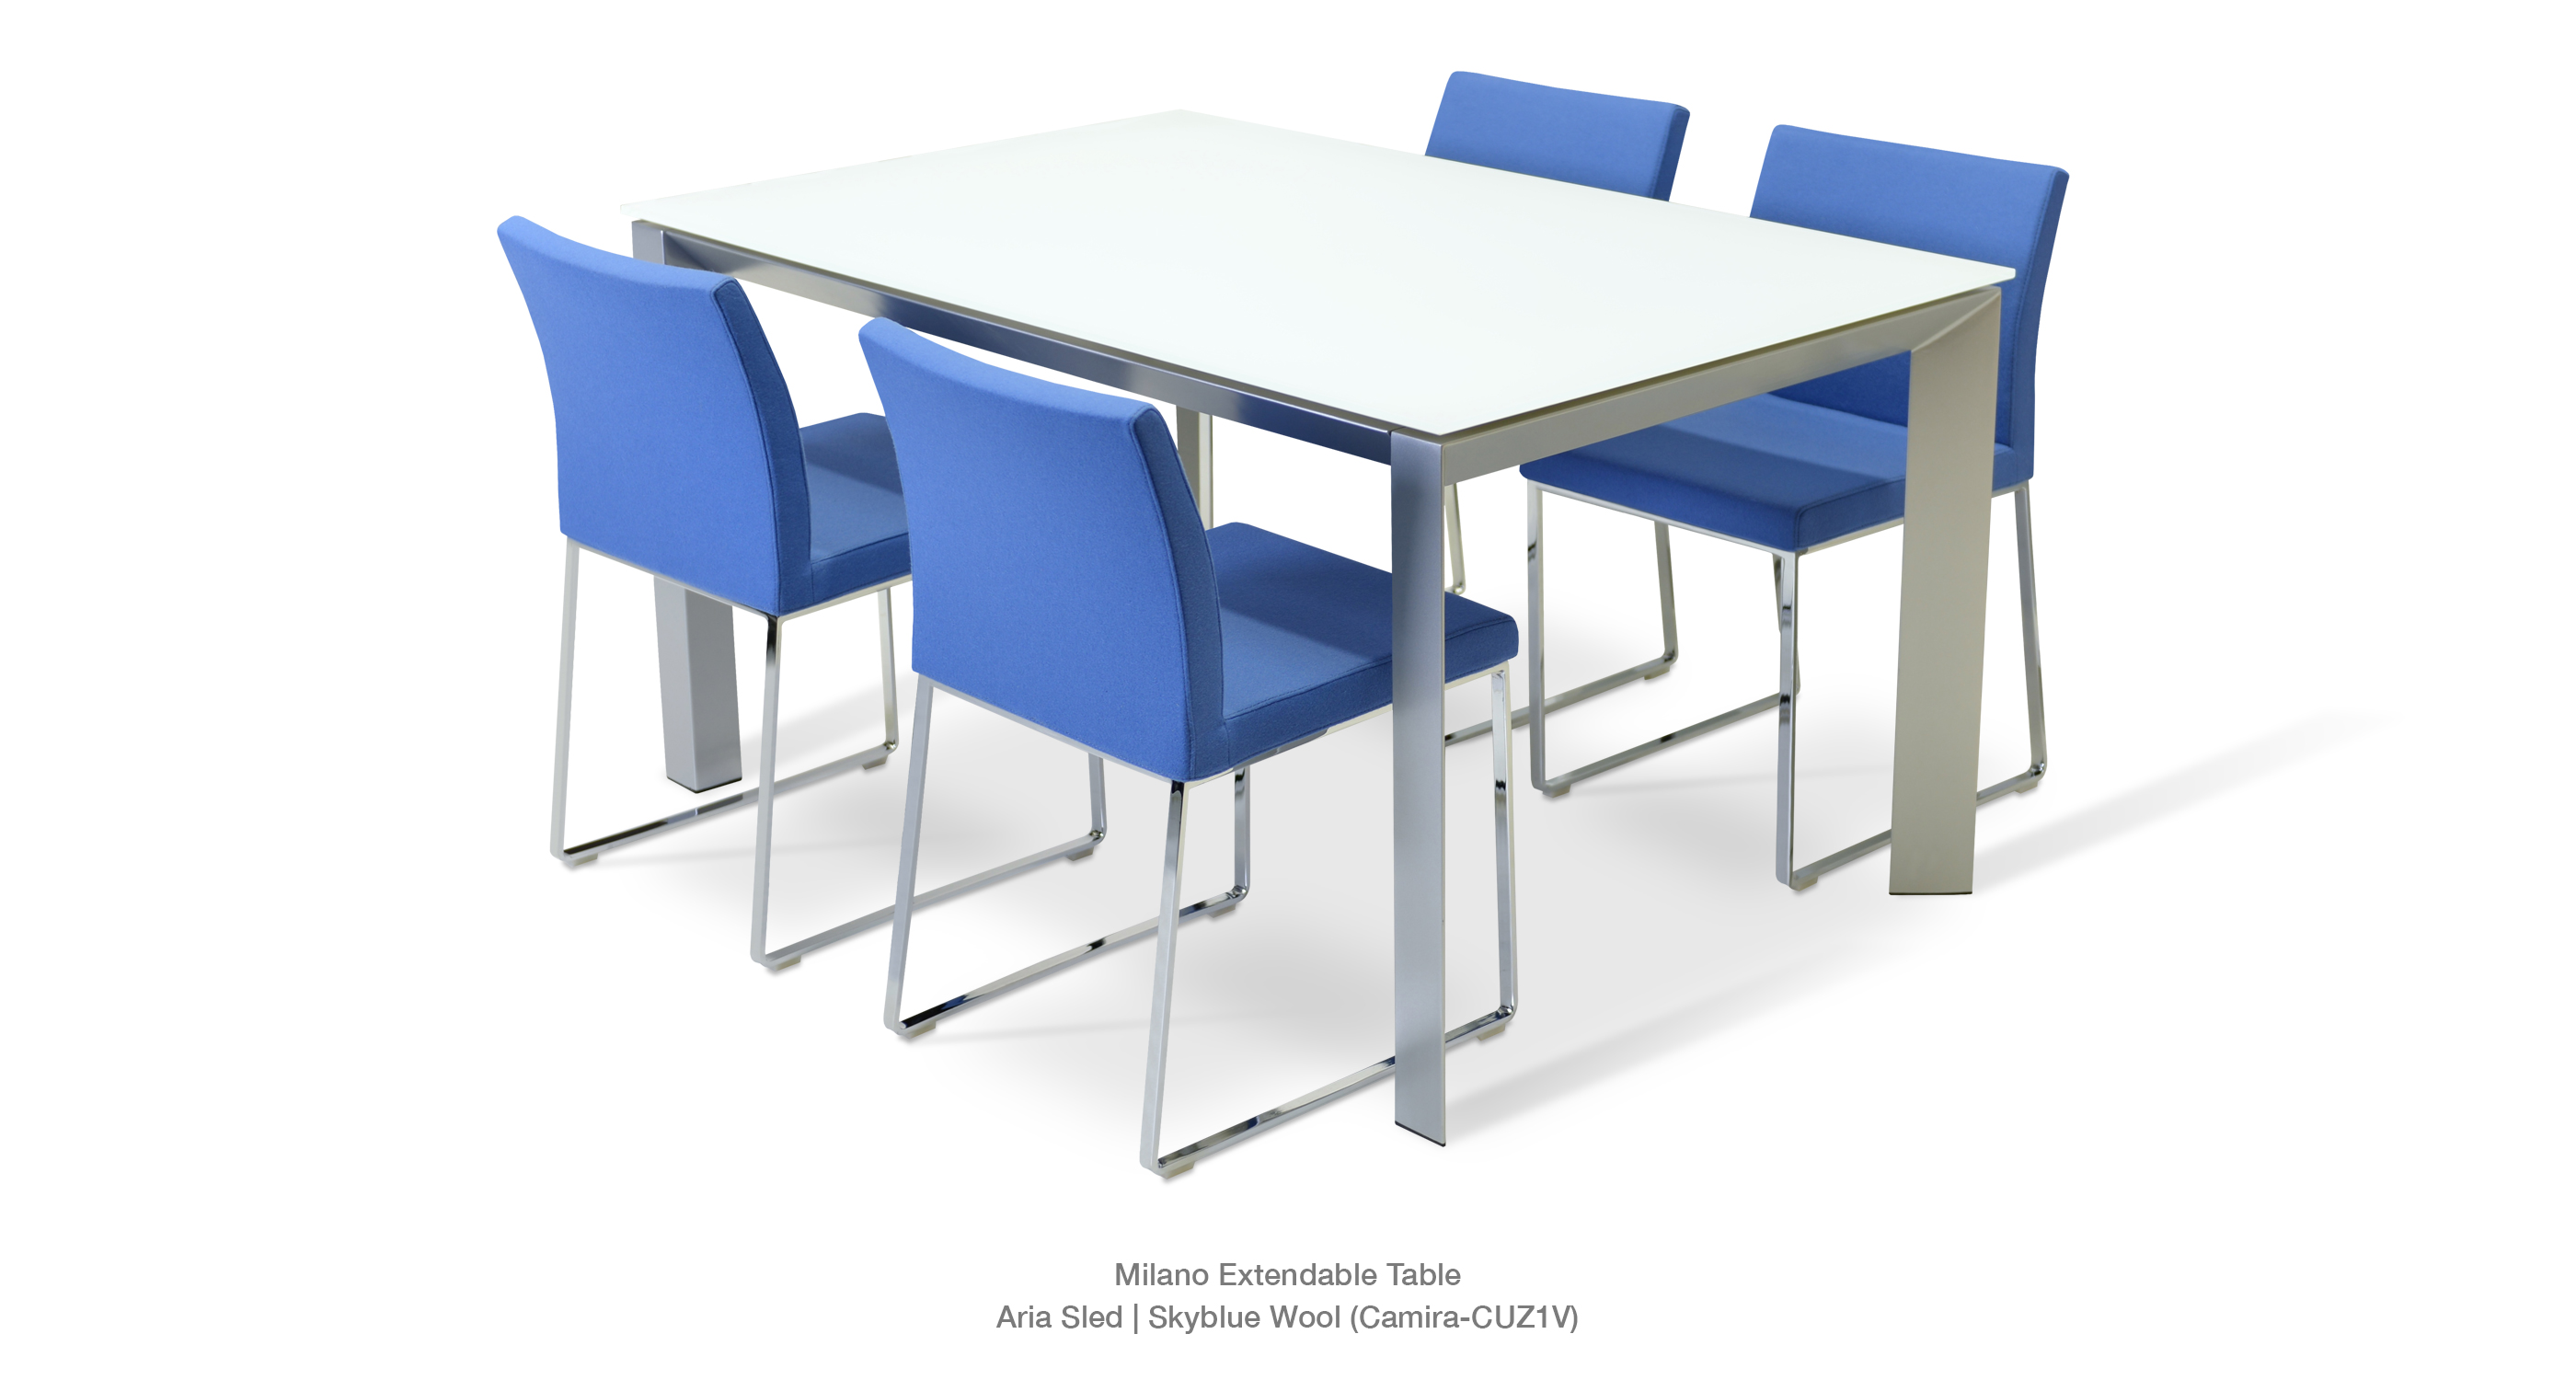 Aria Sled Skyblue and Milano Table